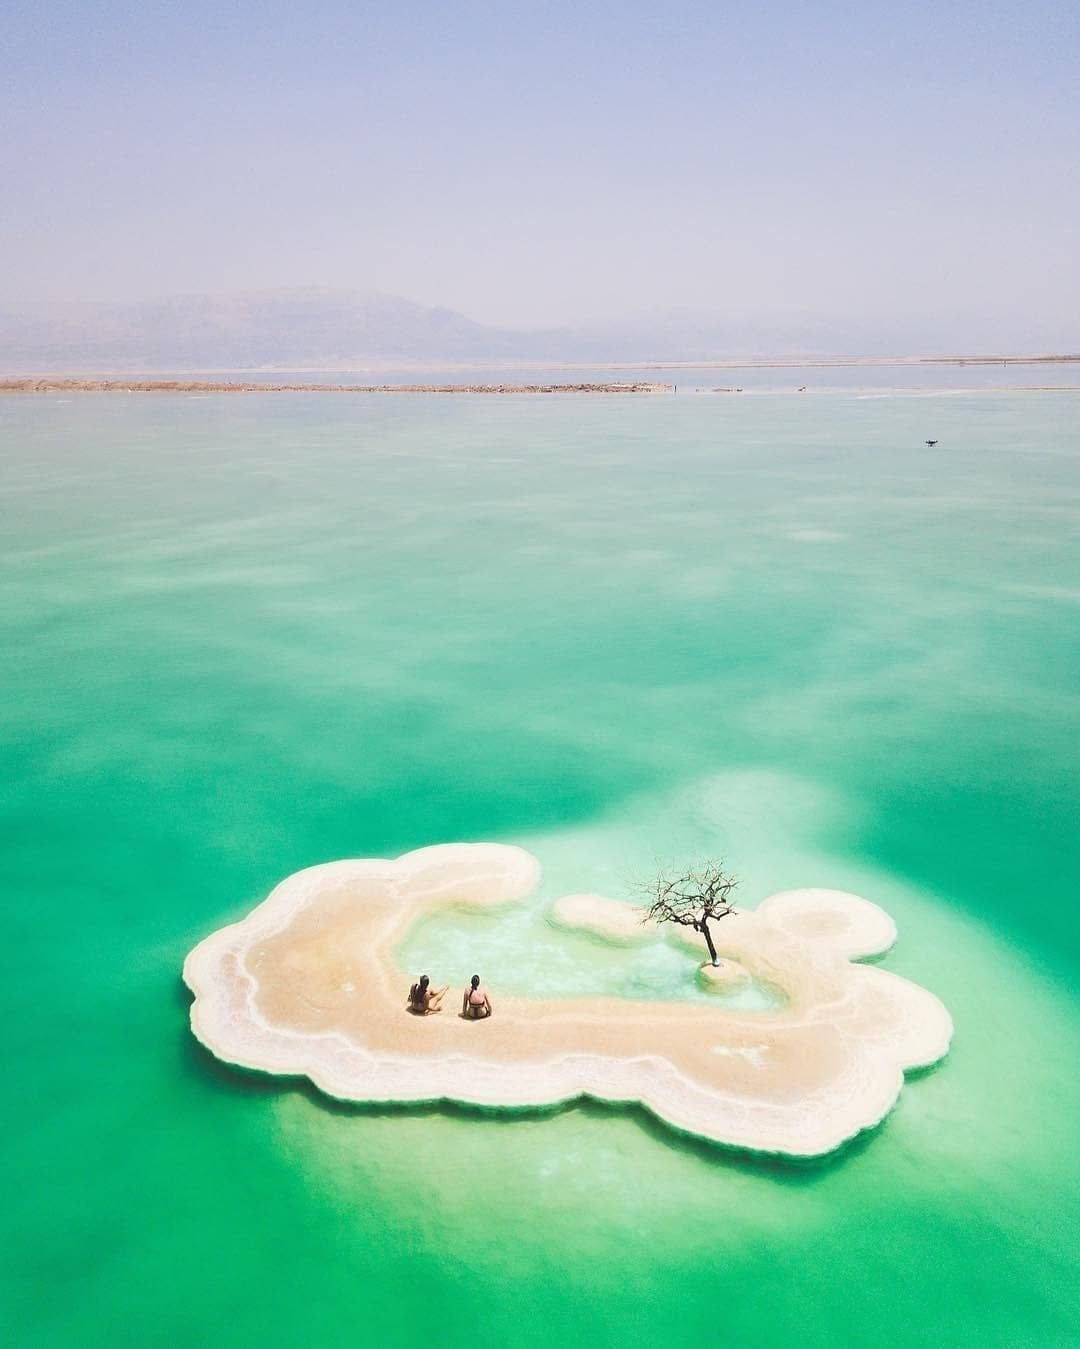 Discover Earth On Instagram Take Relaxation To The Next Level In The Dead Sea The Lowe Beautiful Places To Visit Beautiful Places To Travel Places To Travel